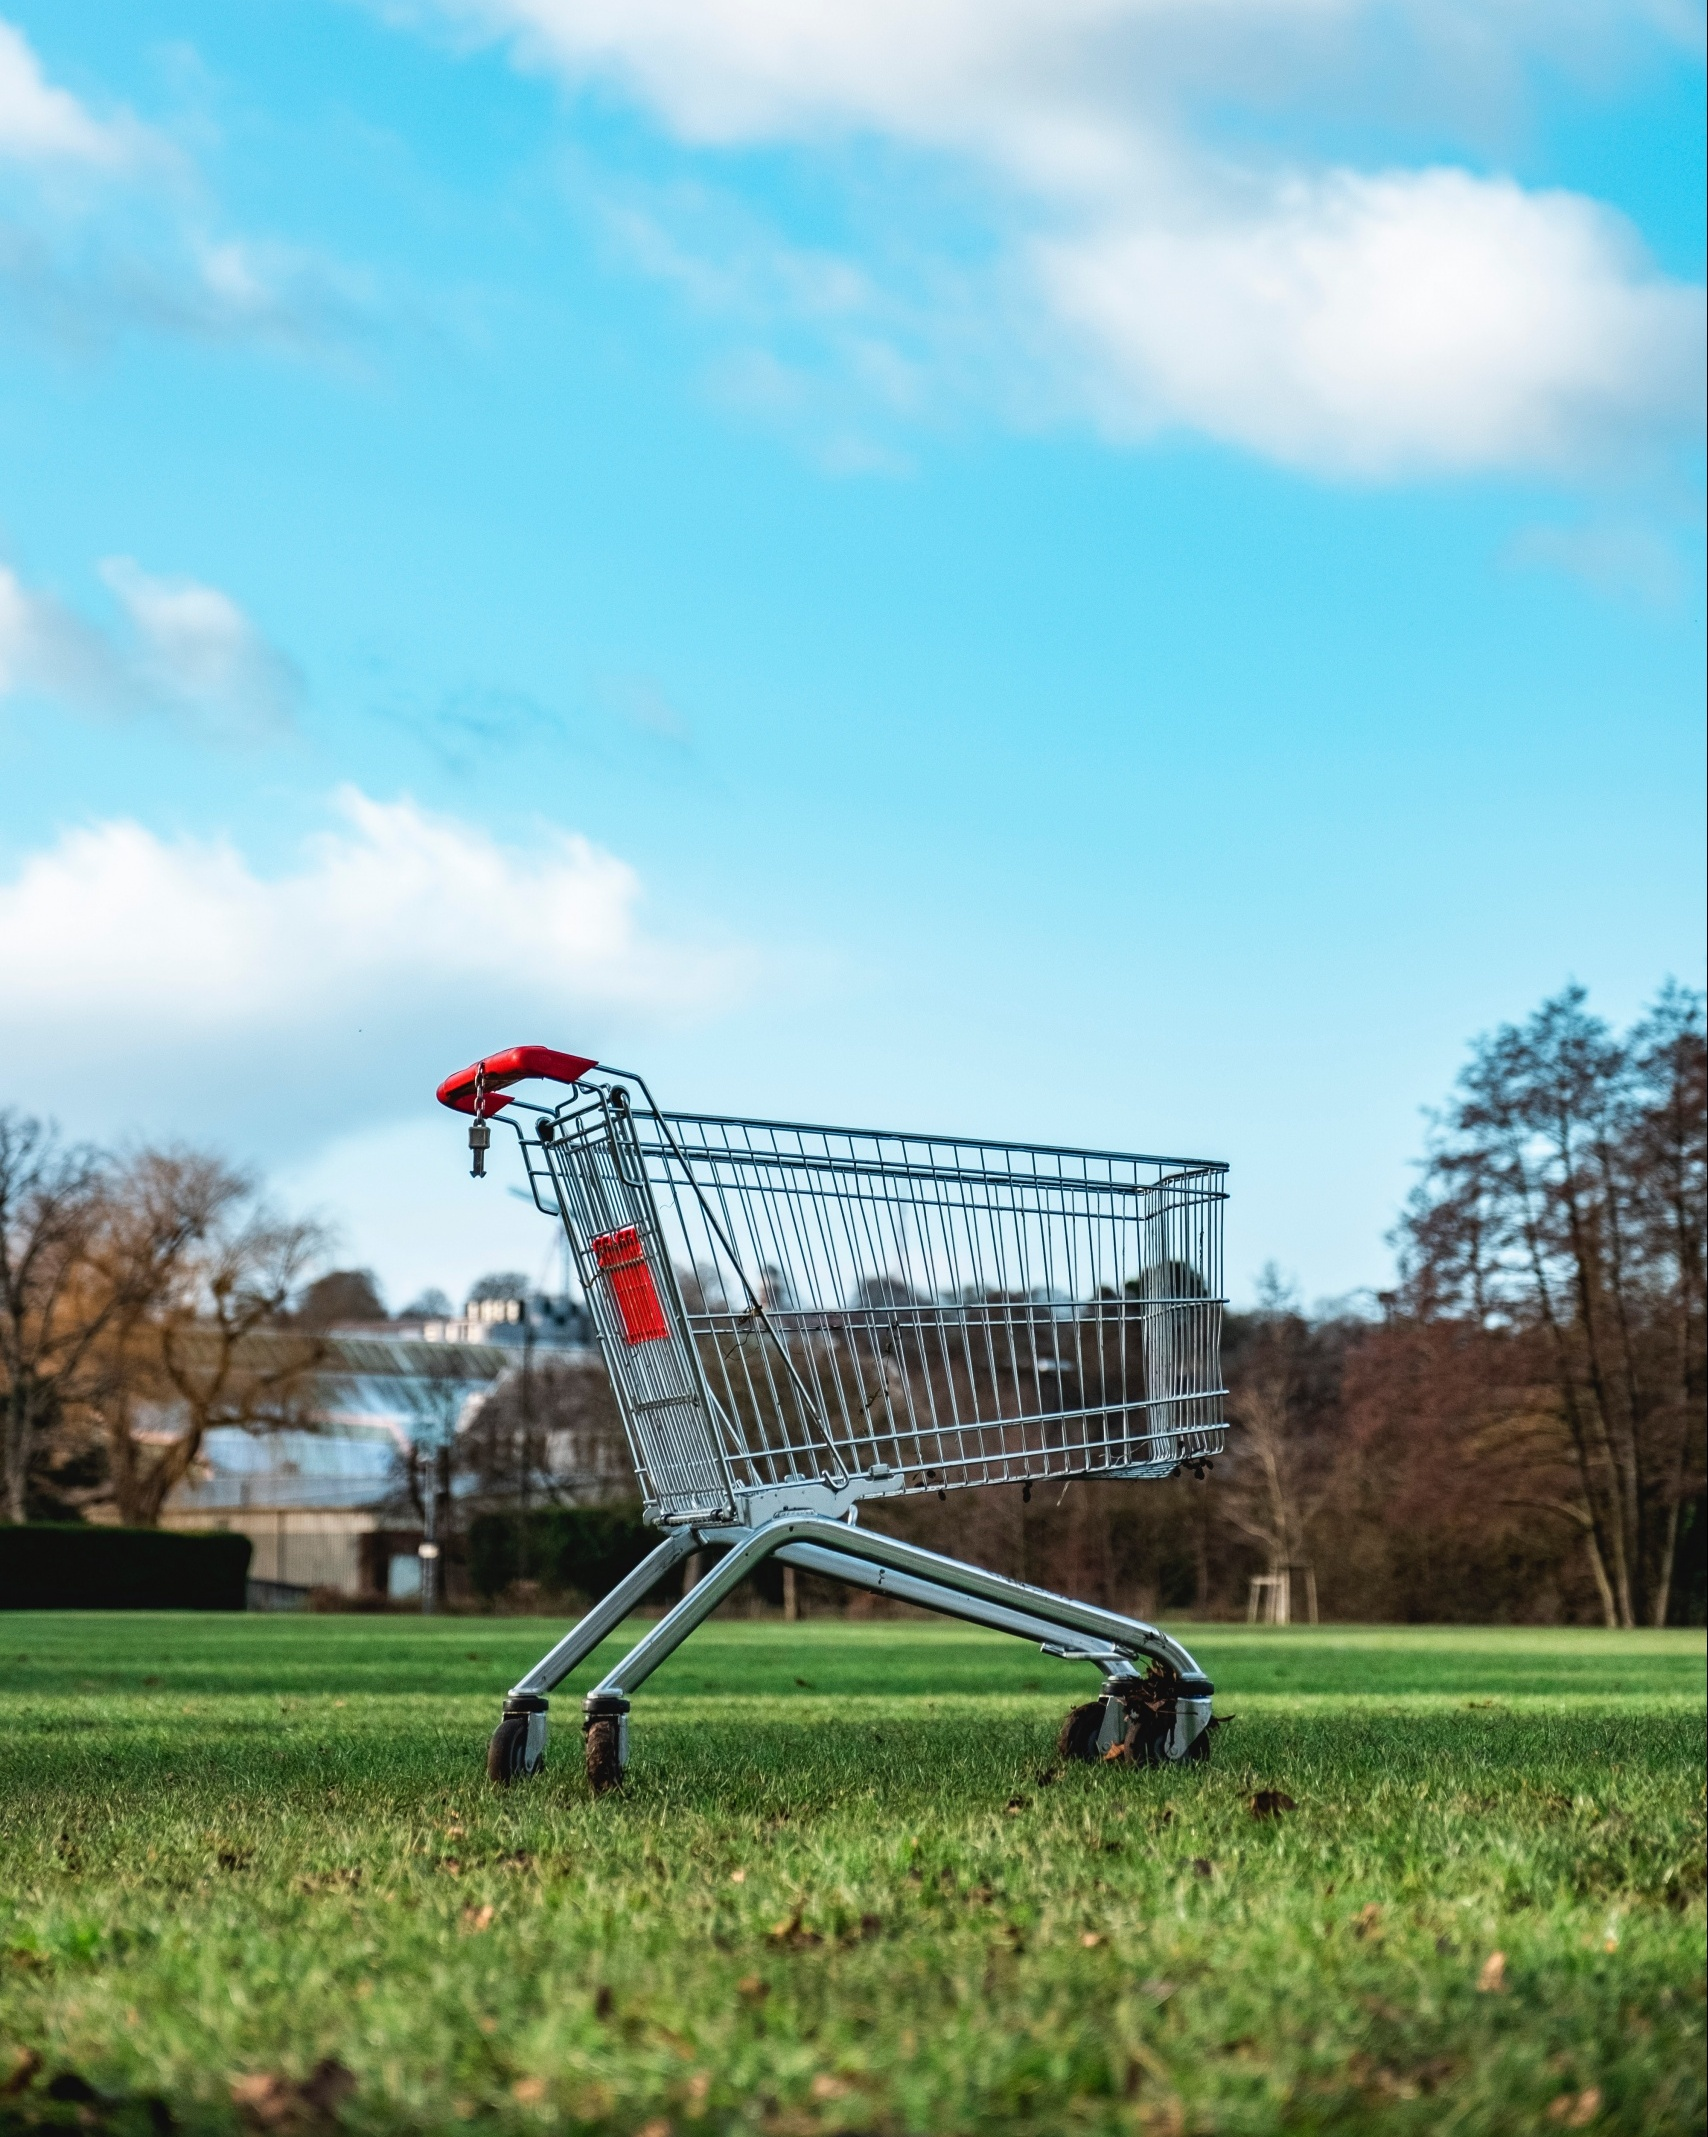 An empty shopping cart on a grassy lawn